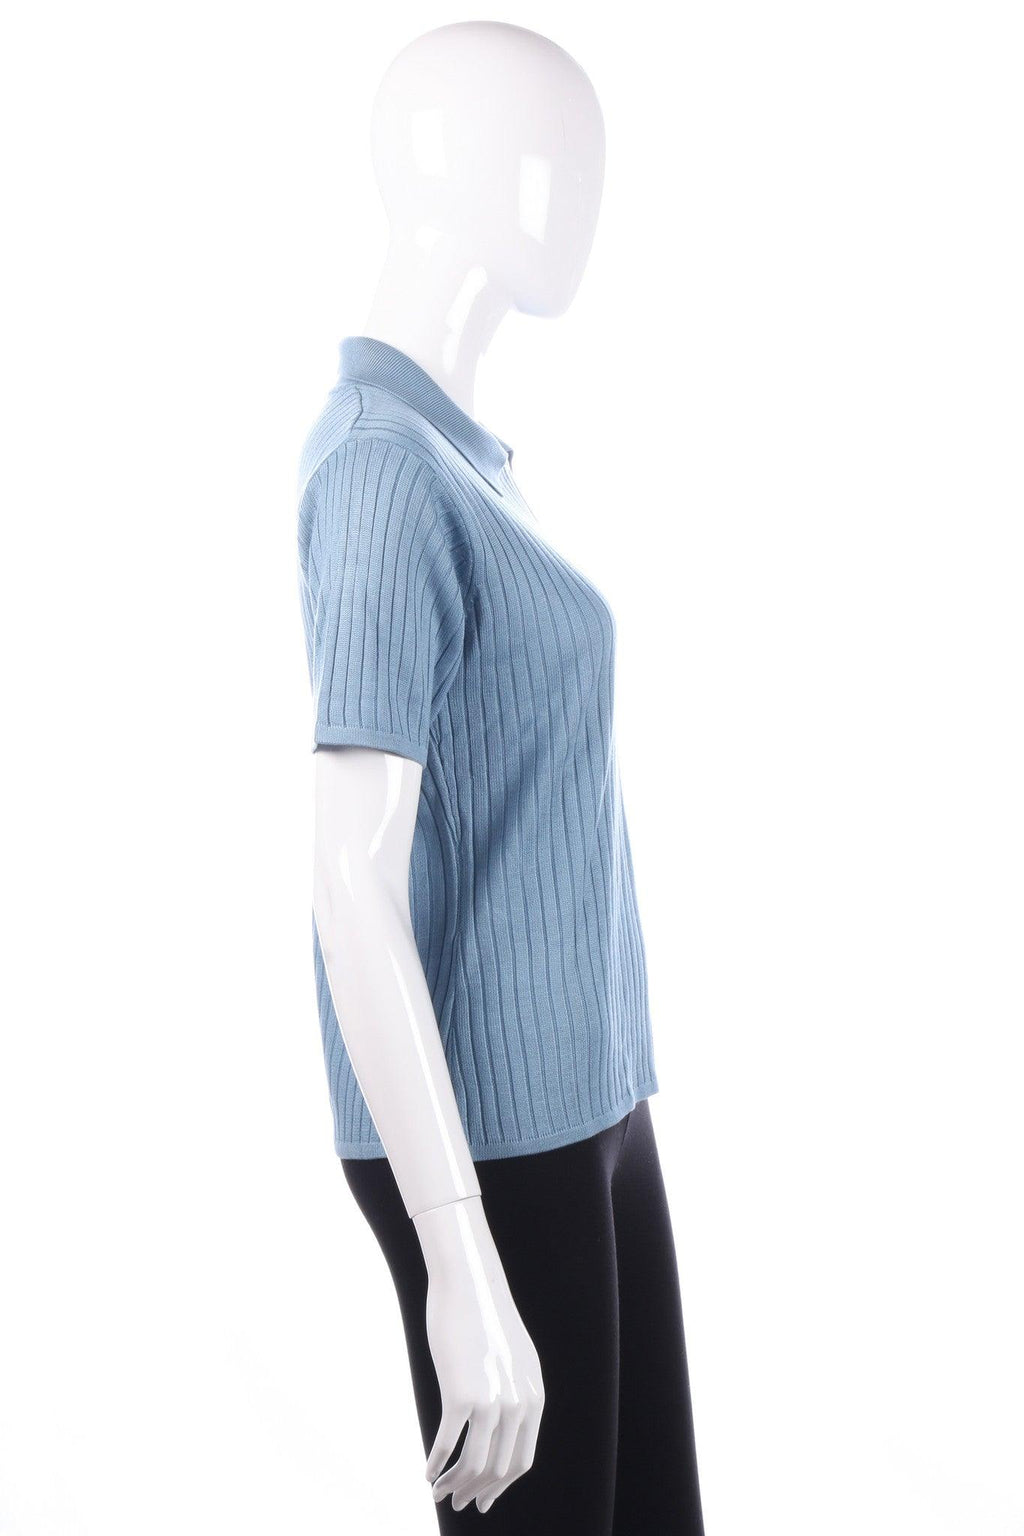 Viz-A-Viz blue top with collar size M side